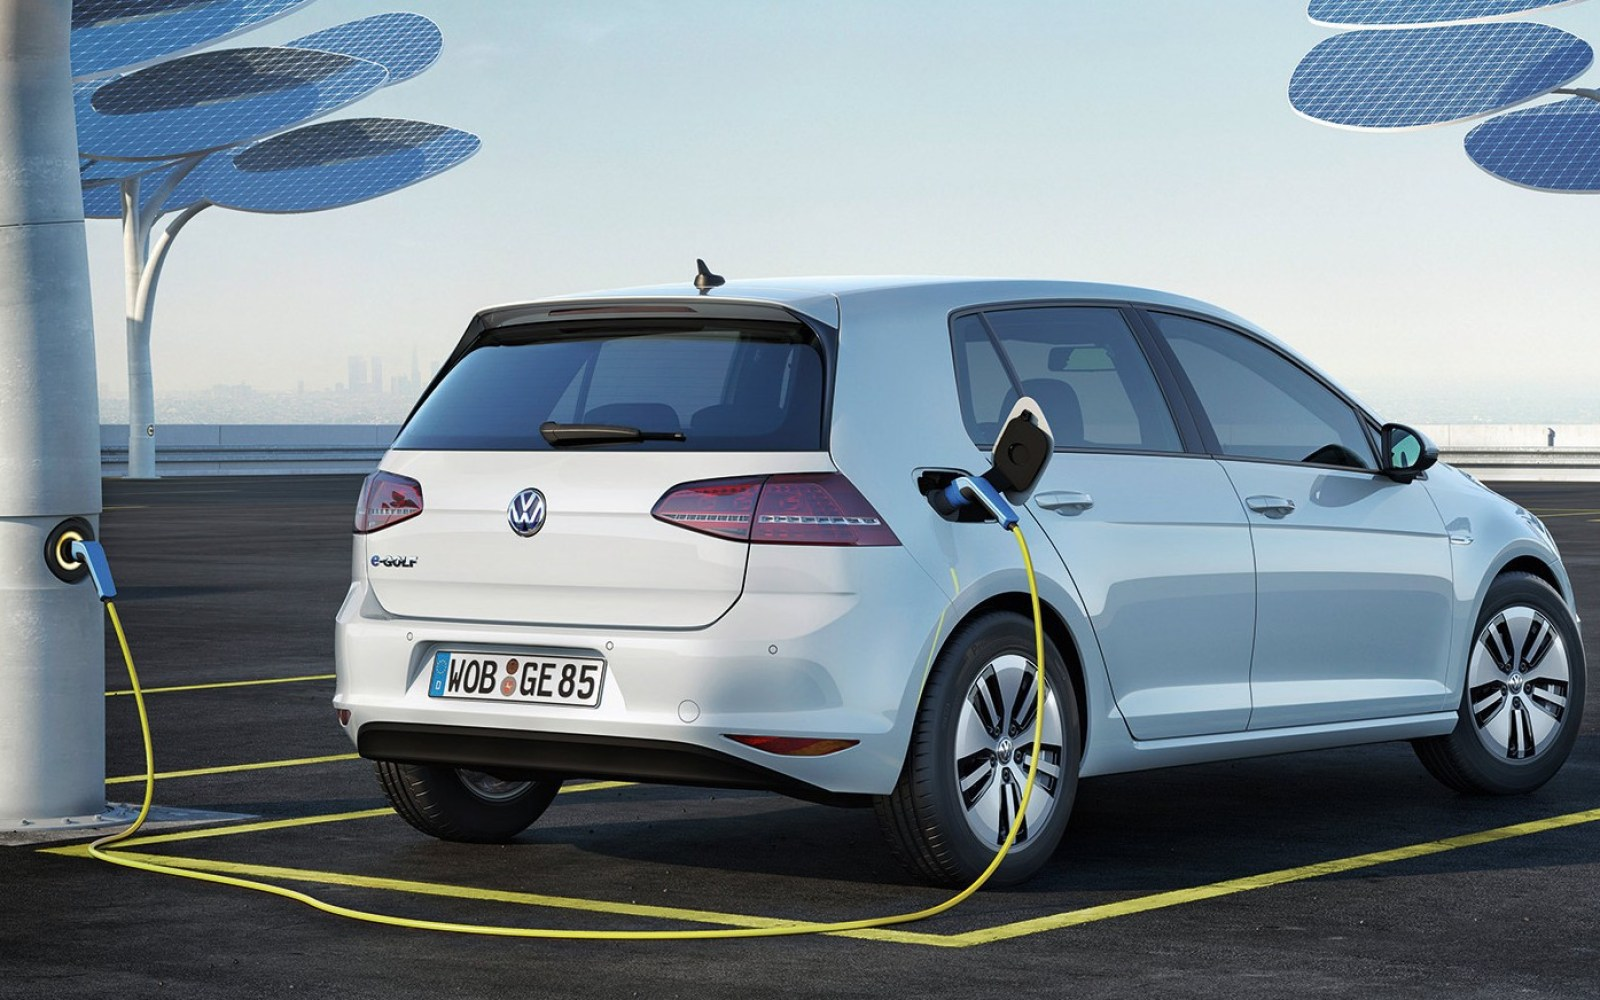 vw announces new plan to build 2 to 3 million all-electric cars a year by 2025